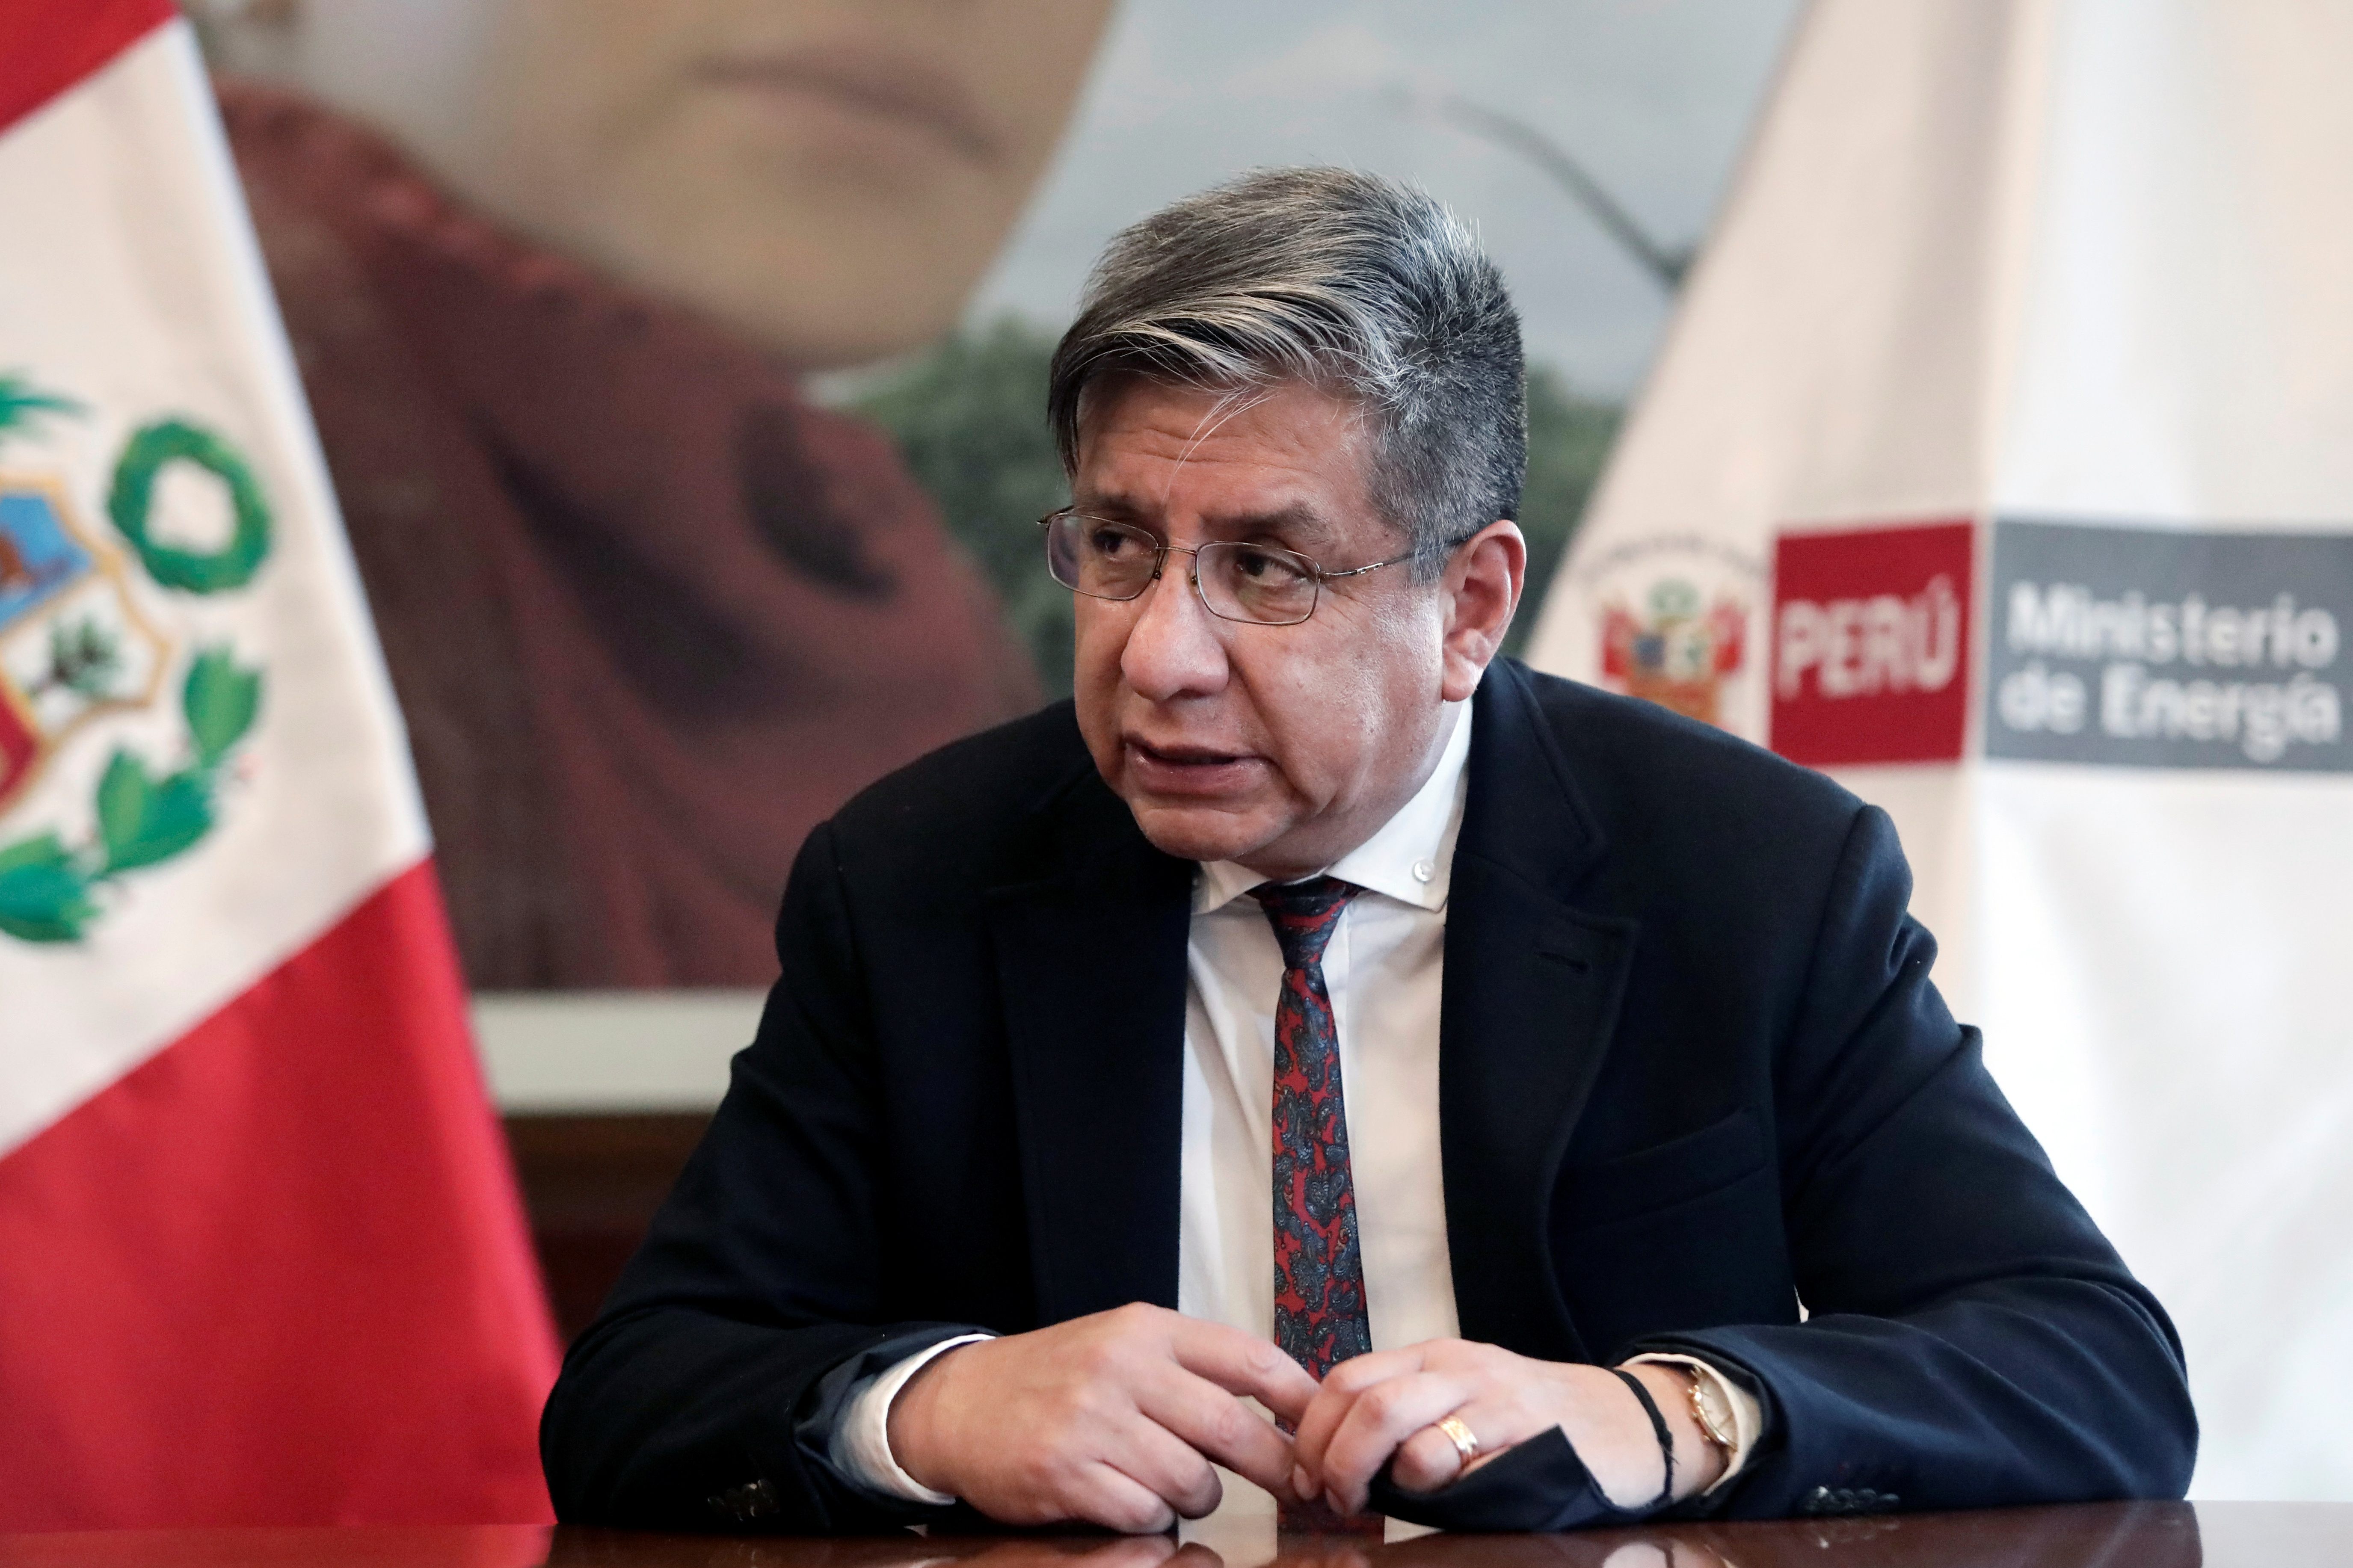 Peru's Minister of Energy and Mines Ivan Merino attends an interview with Reuters, in Lima, Peru September 30, 2021. REUTERS/Angela Ponce